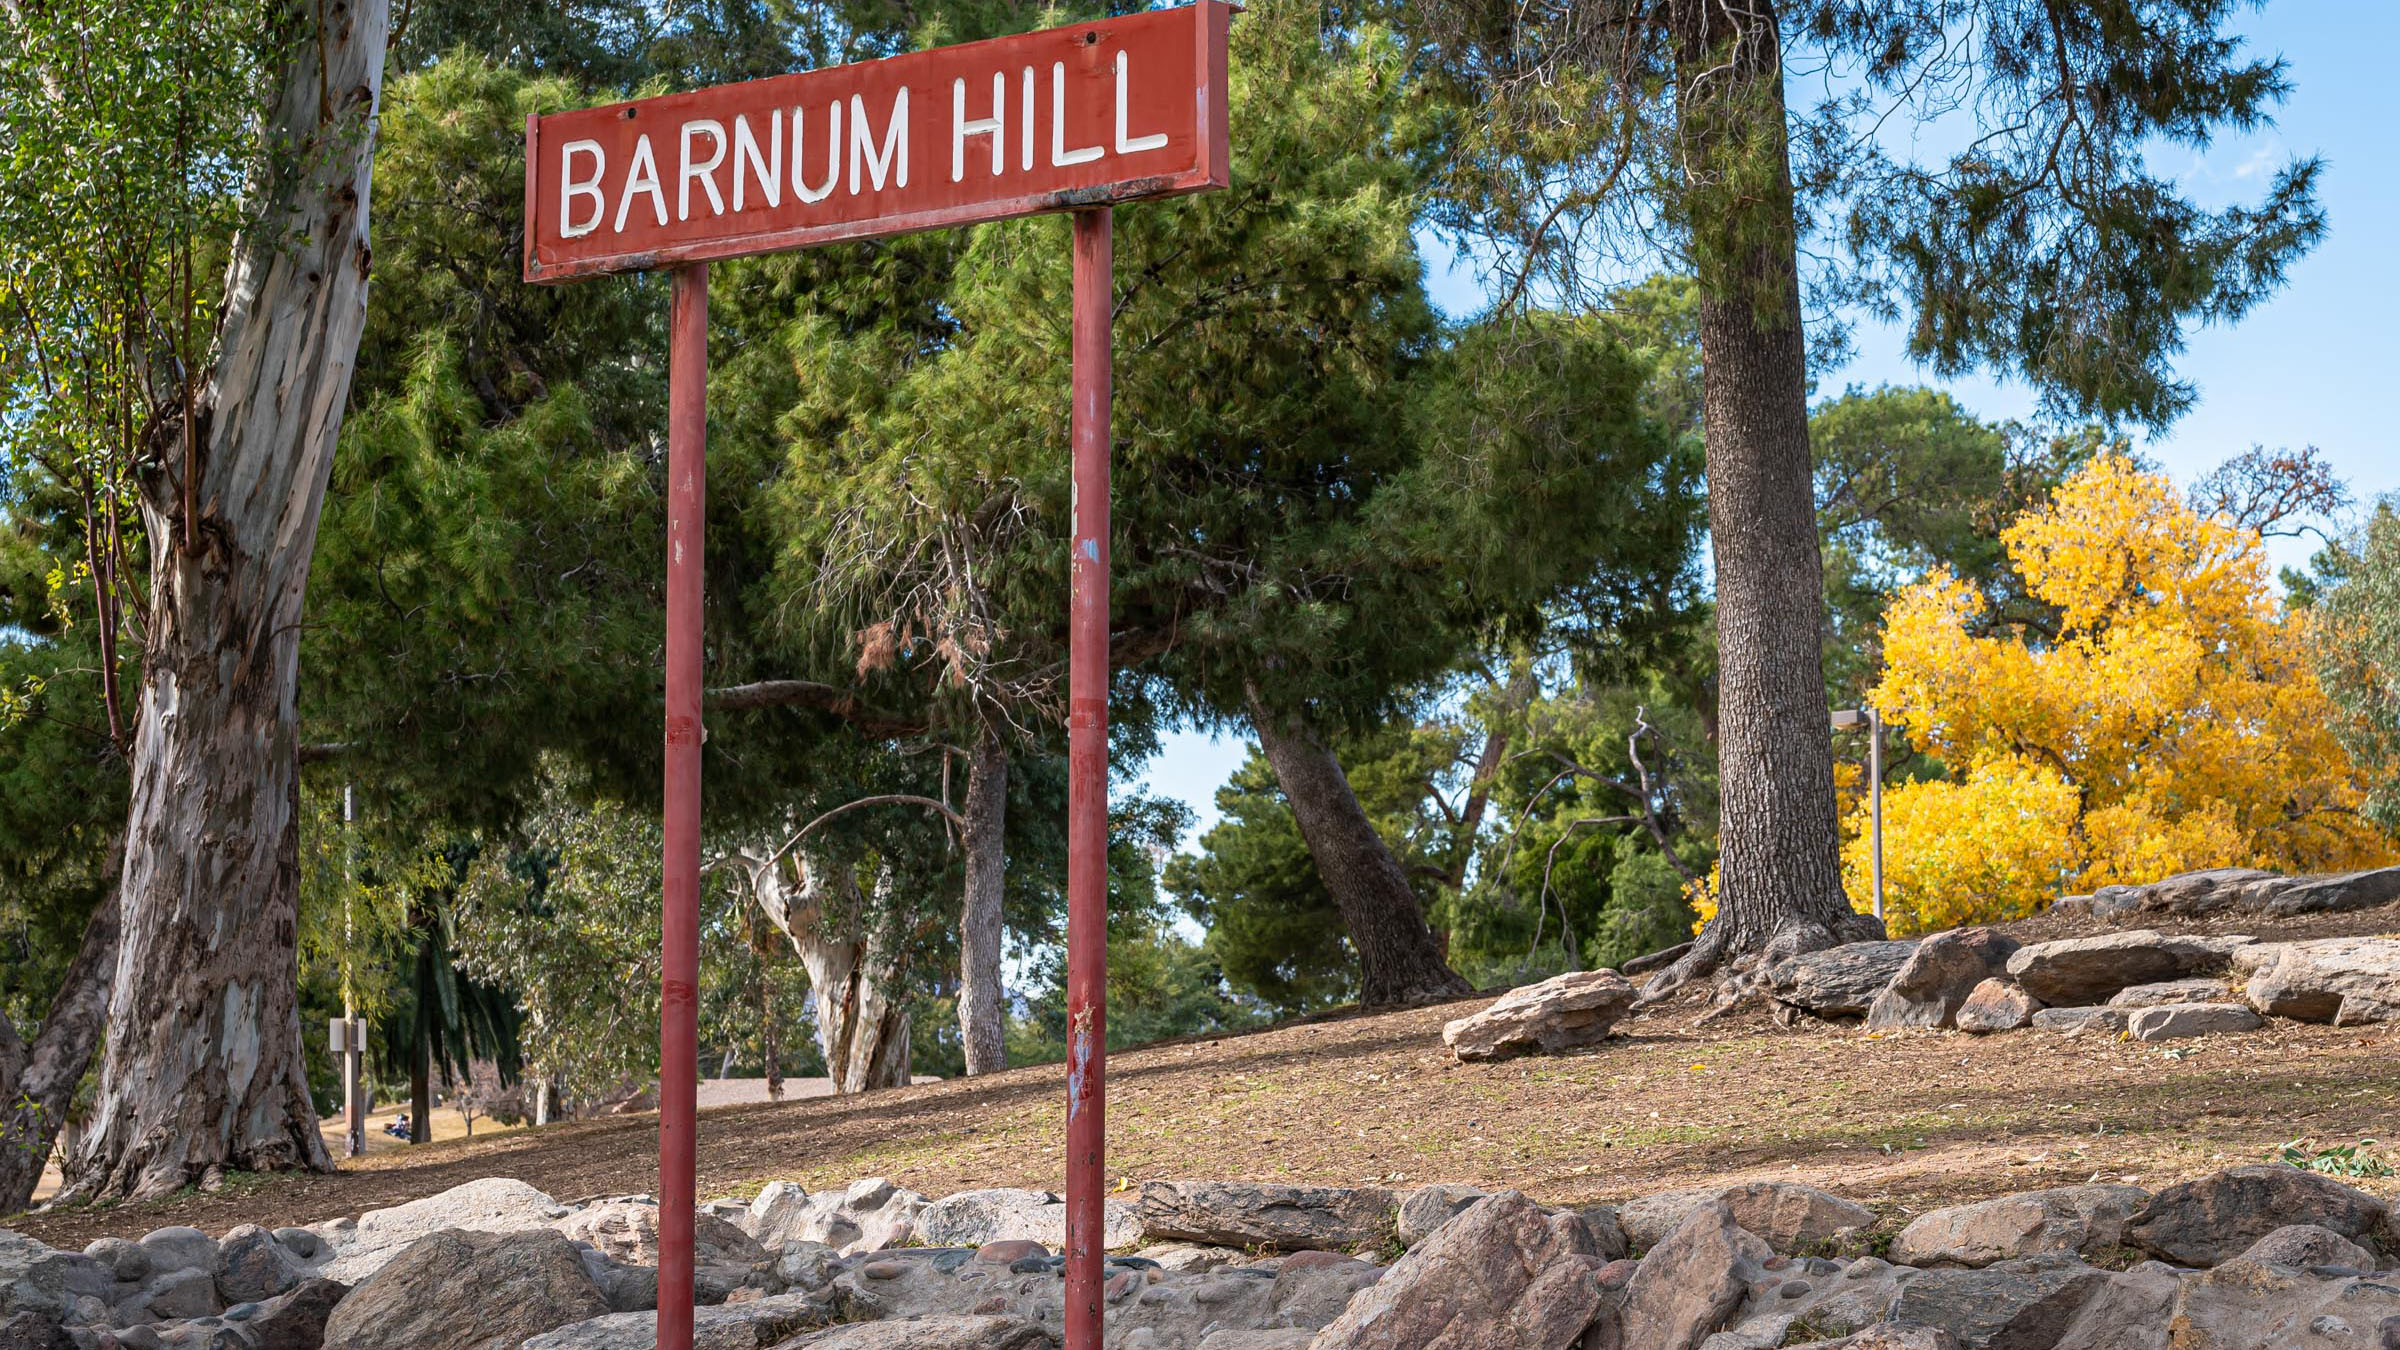 The sign designating Barnum Hill, a man-made feature of Reid Park that may soon become a part of Reid Park Zoo's planned tiger enclosure.